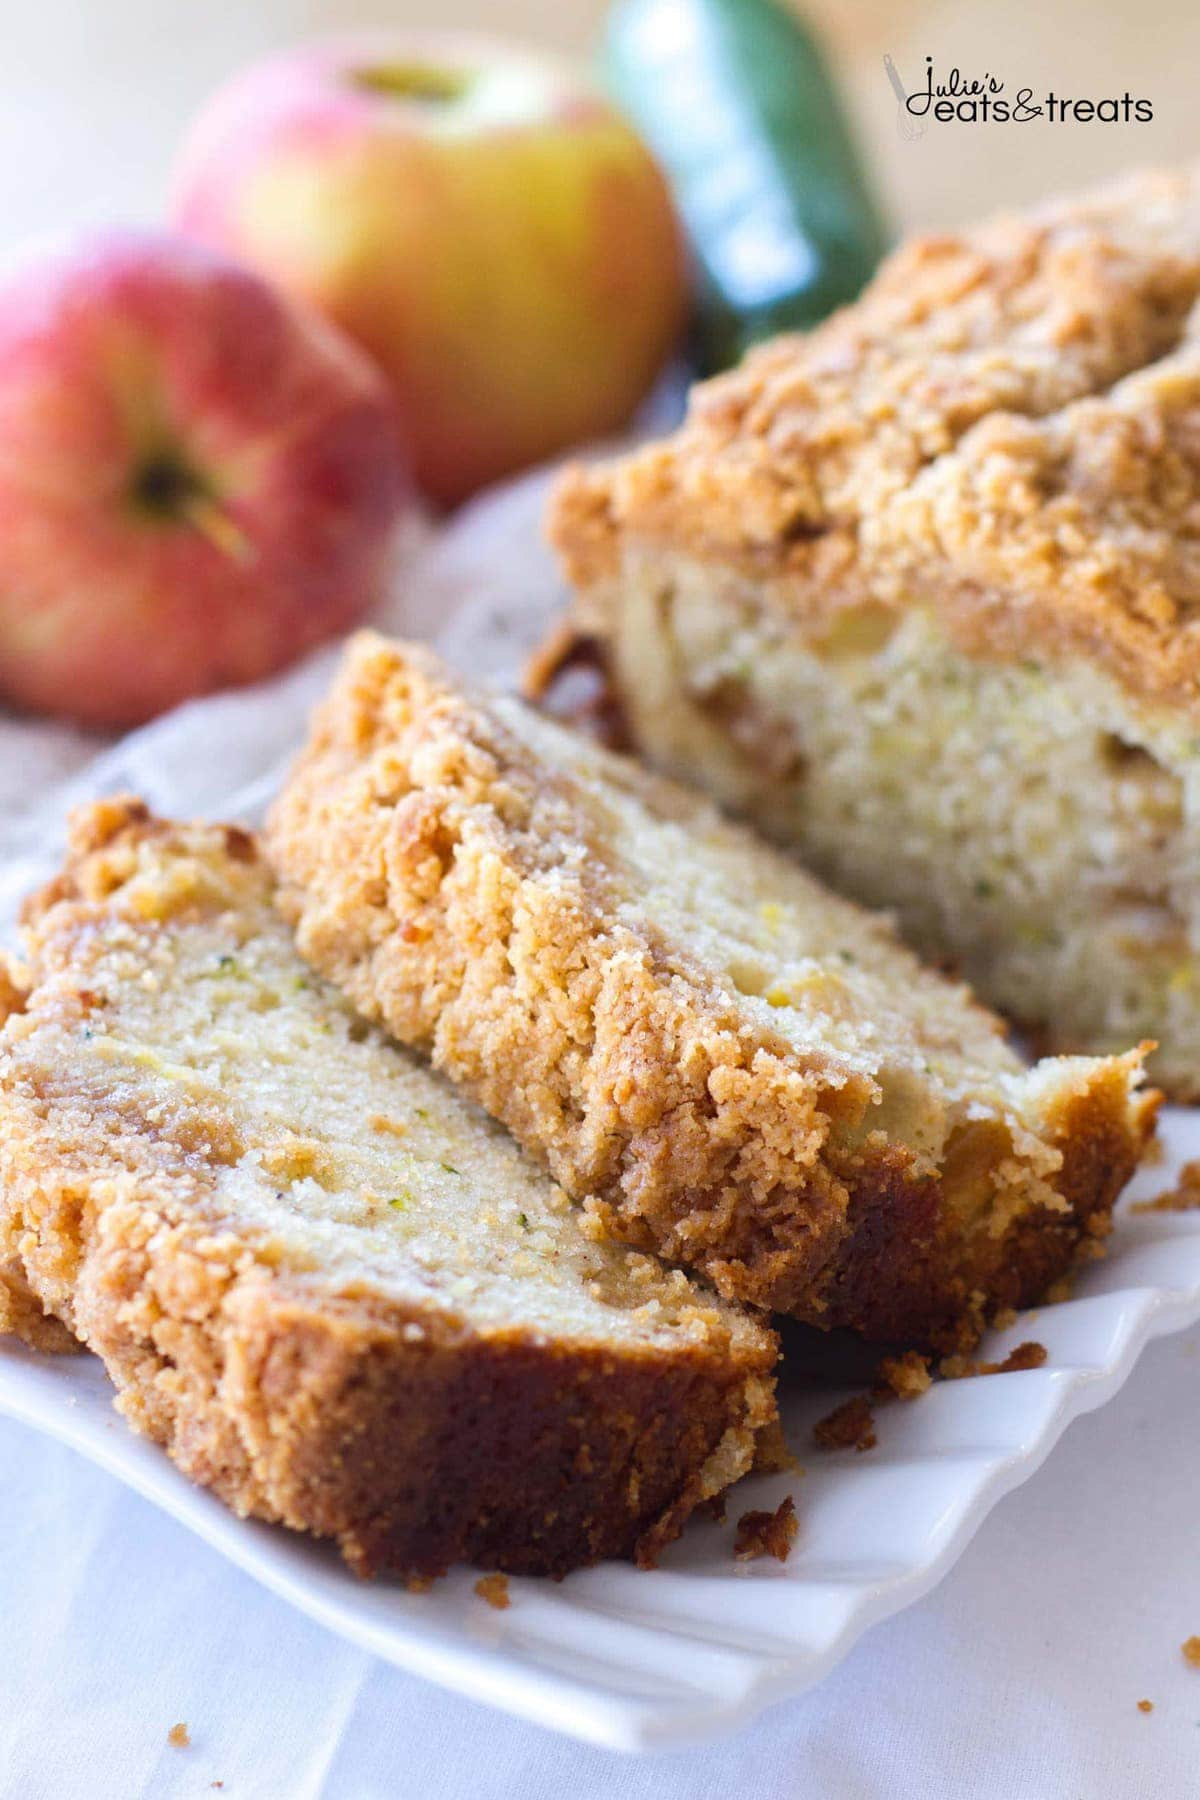 Slices of Crumb Apple Zucchini Bread ~ Easy, Quick Bread Recipe Filled with Fresh Grated Zucchini and Sweet Apples then Topped with a Delicious Cinnamon Brown Sugar Crumb Topping!